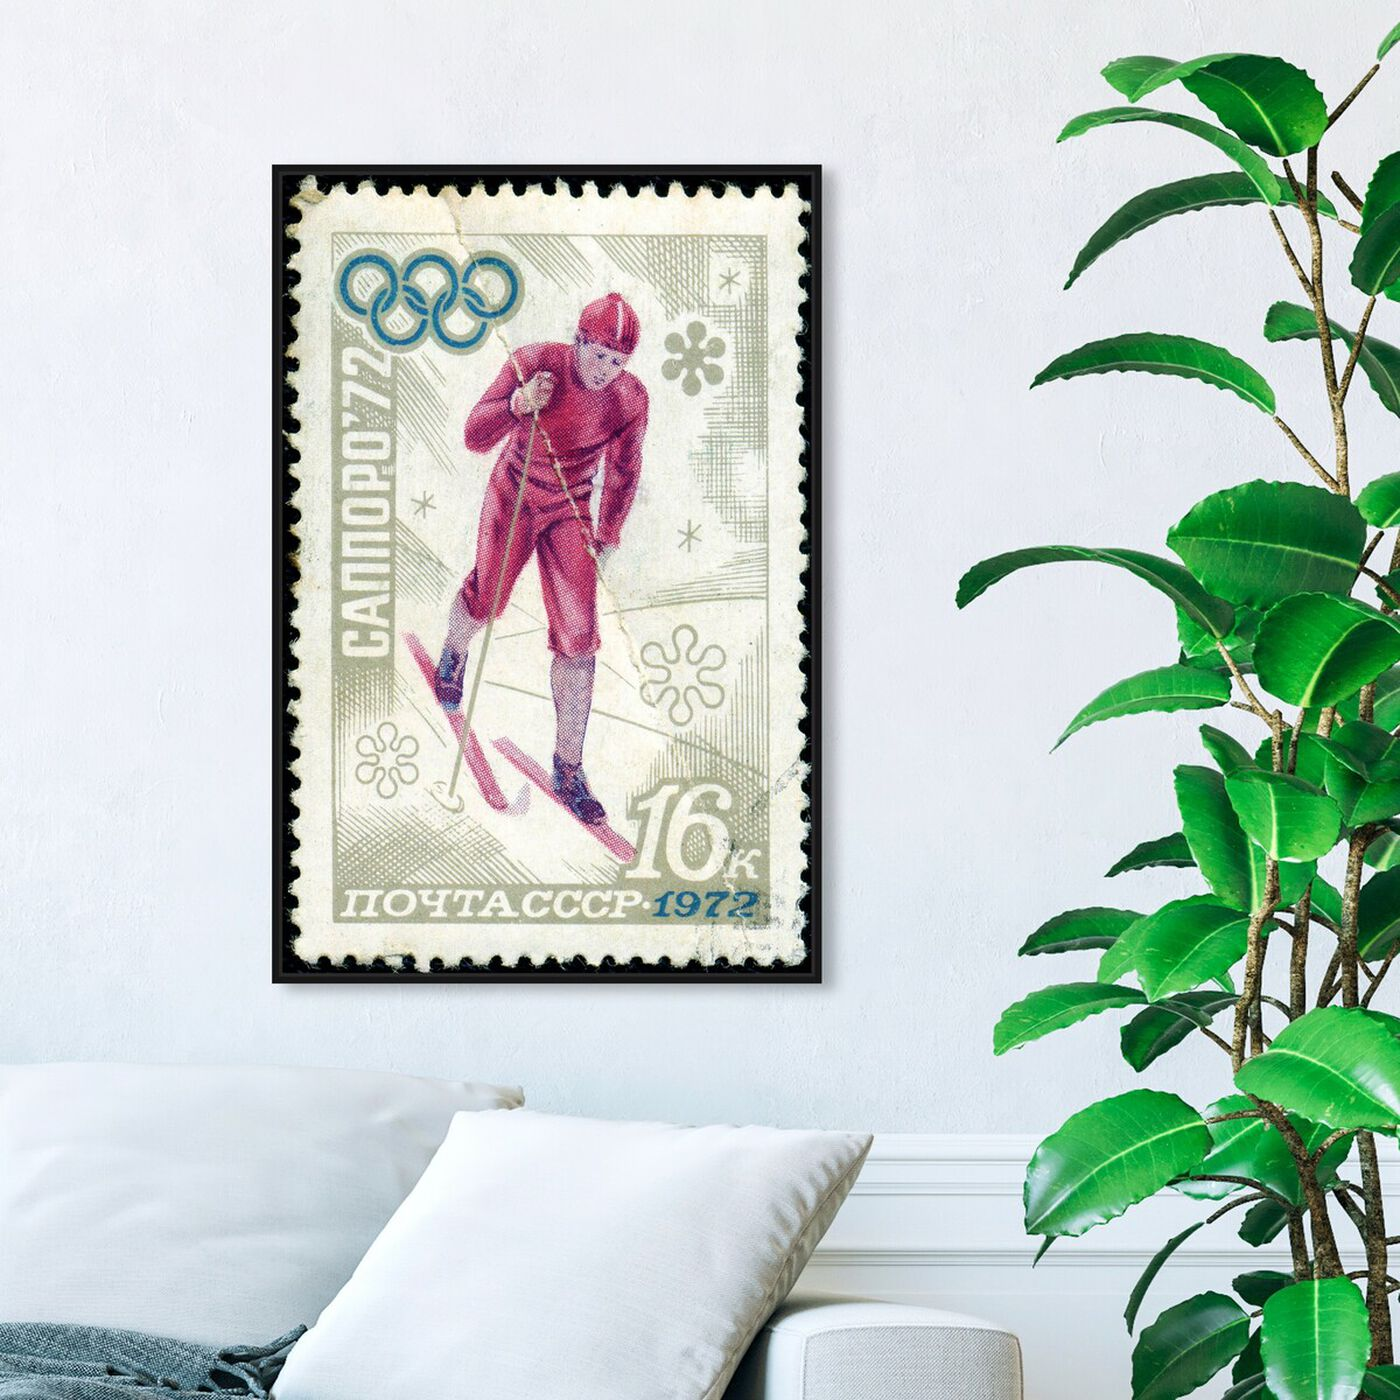 Hanging view of Winter of 1972 featuring sports and teams and skiing art.